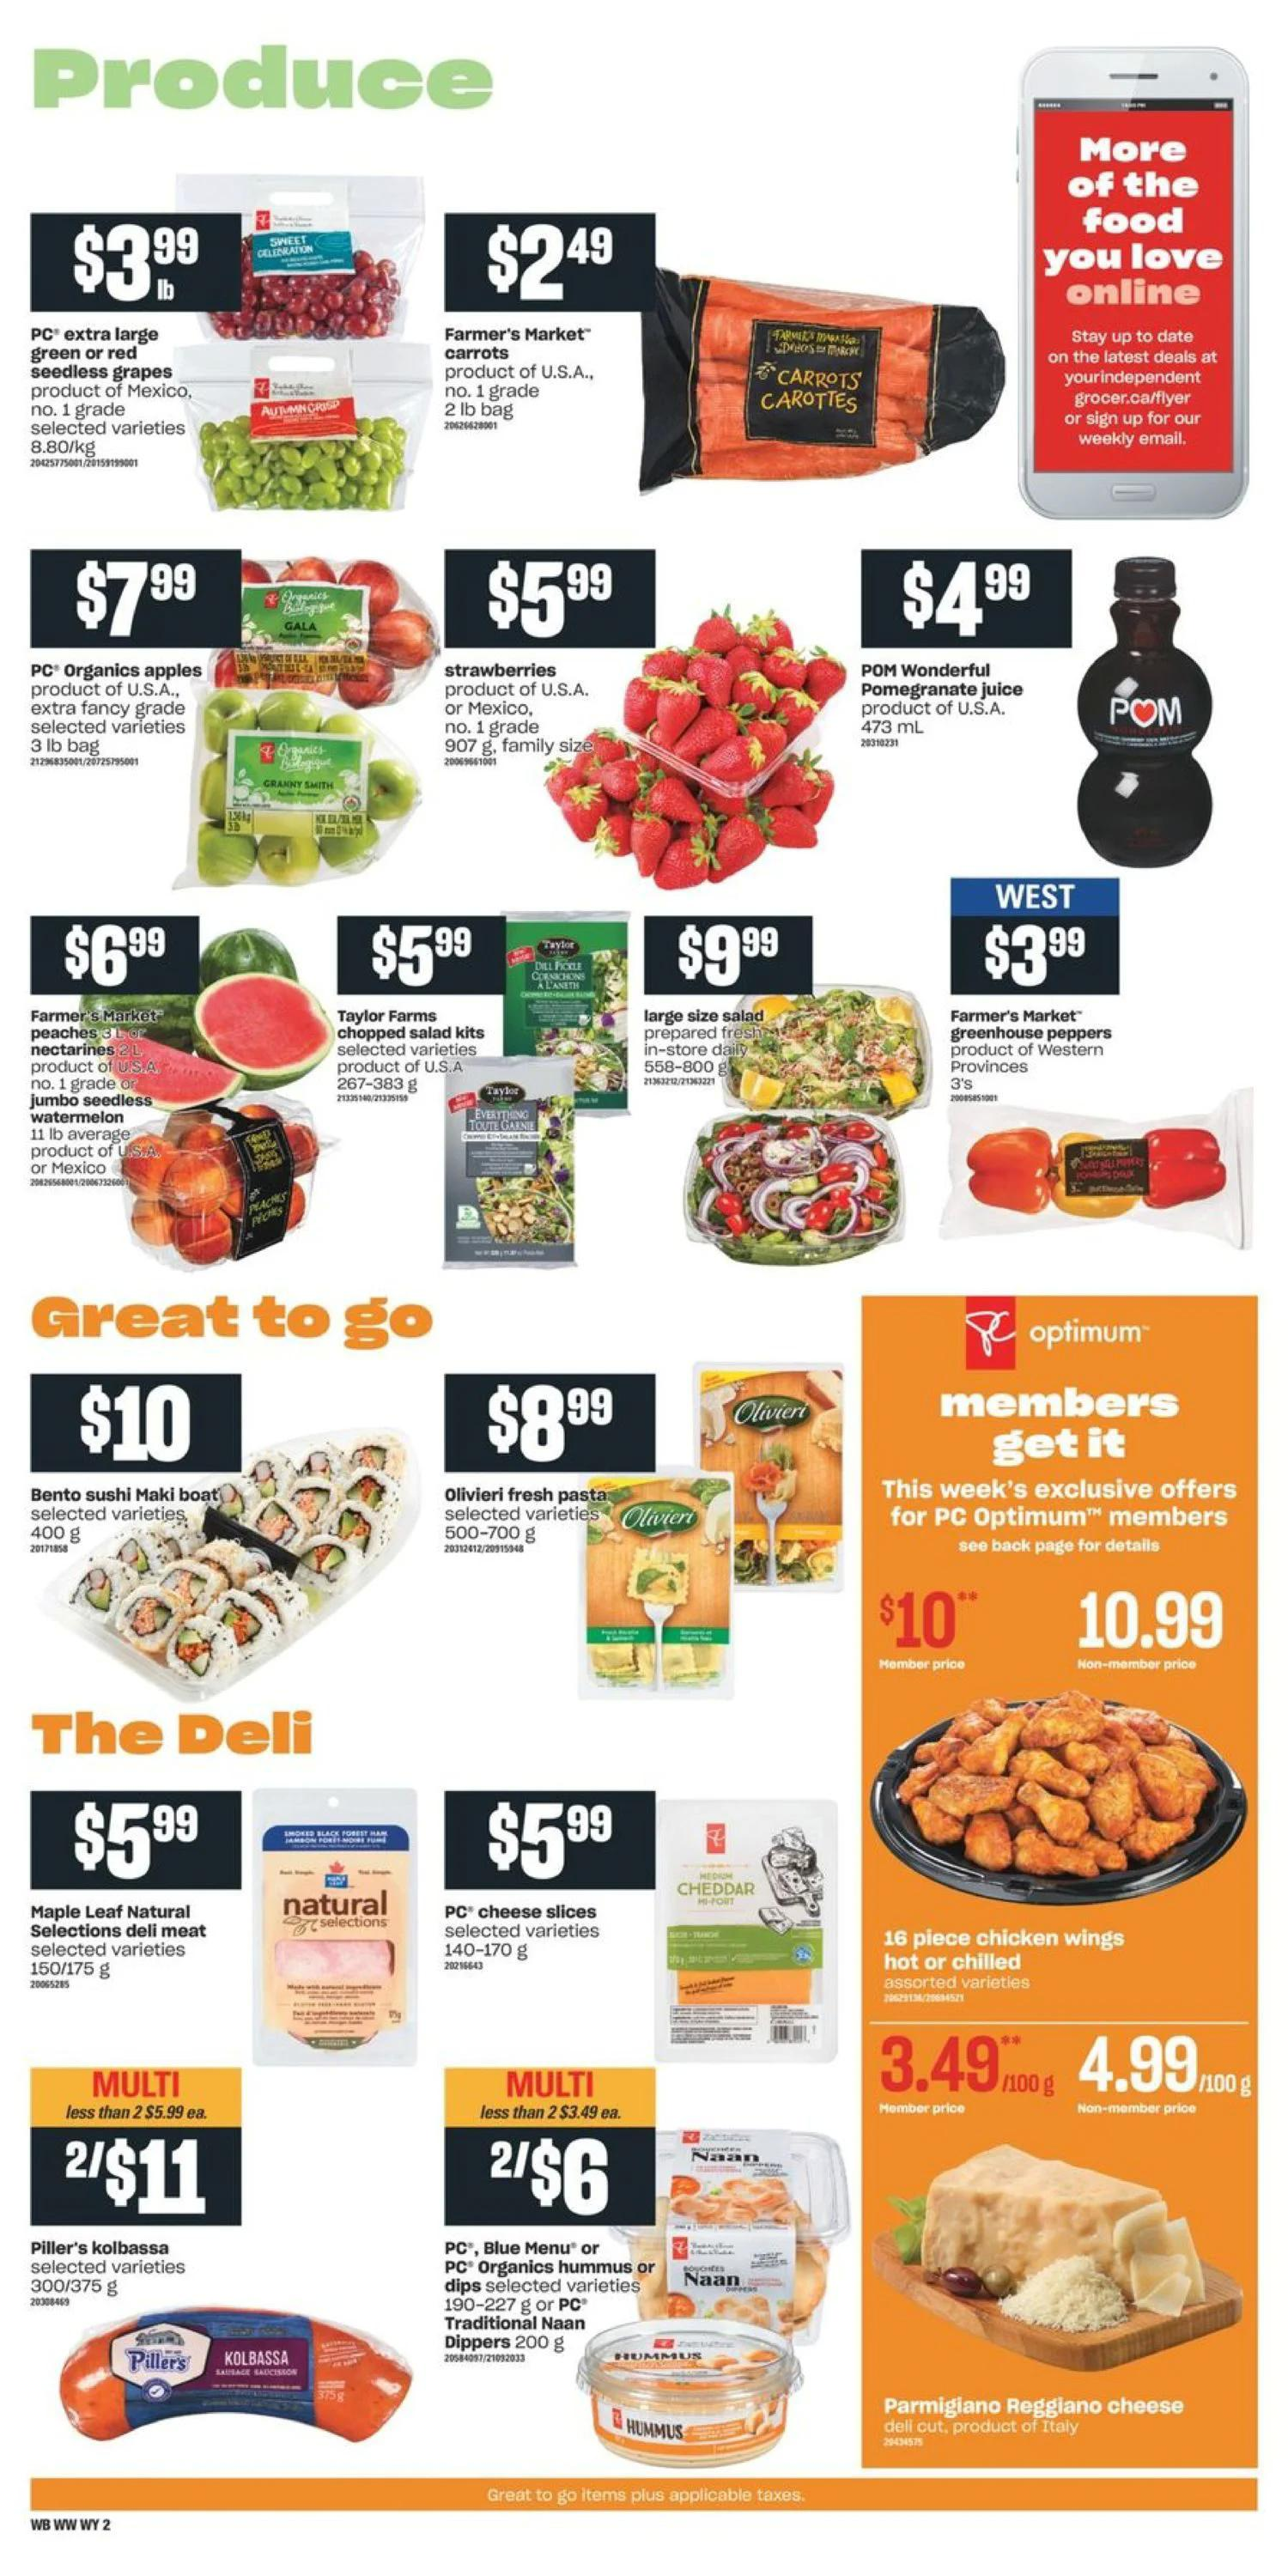 Independent - Weekly Flyer Specials - Page 3